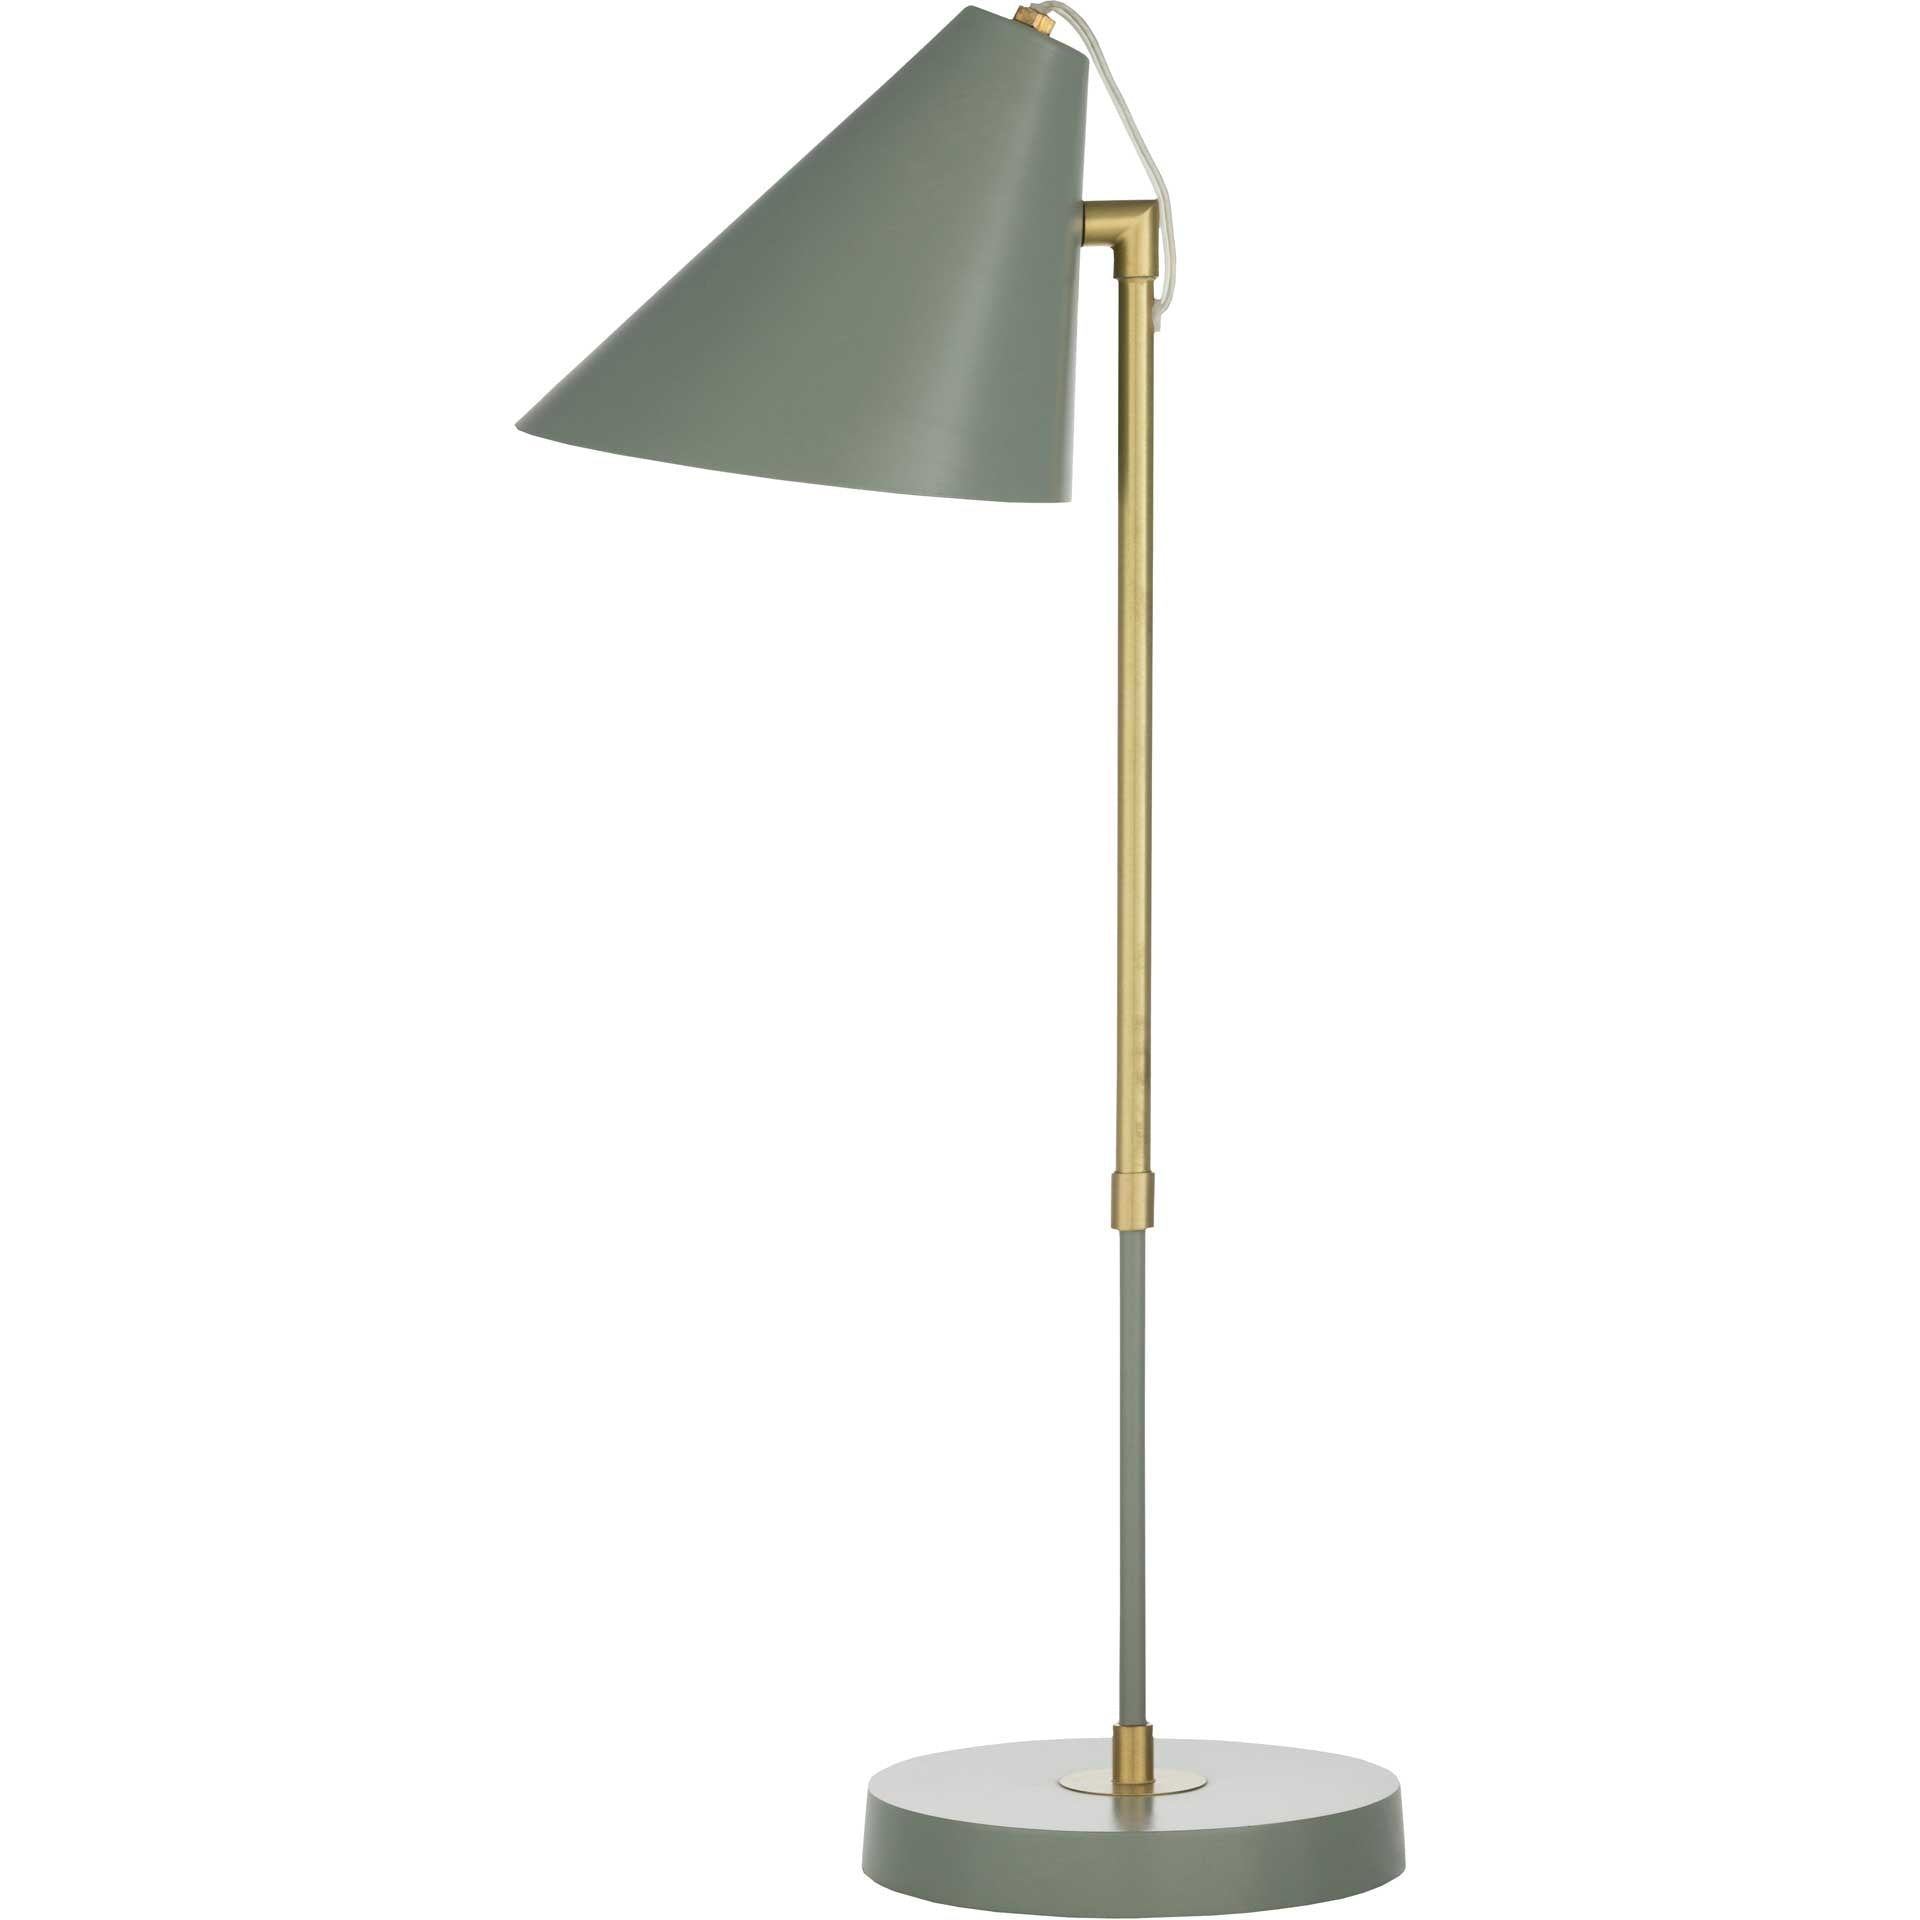 Benson Table Lamp Medium Gray/Gray/Brass